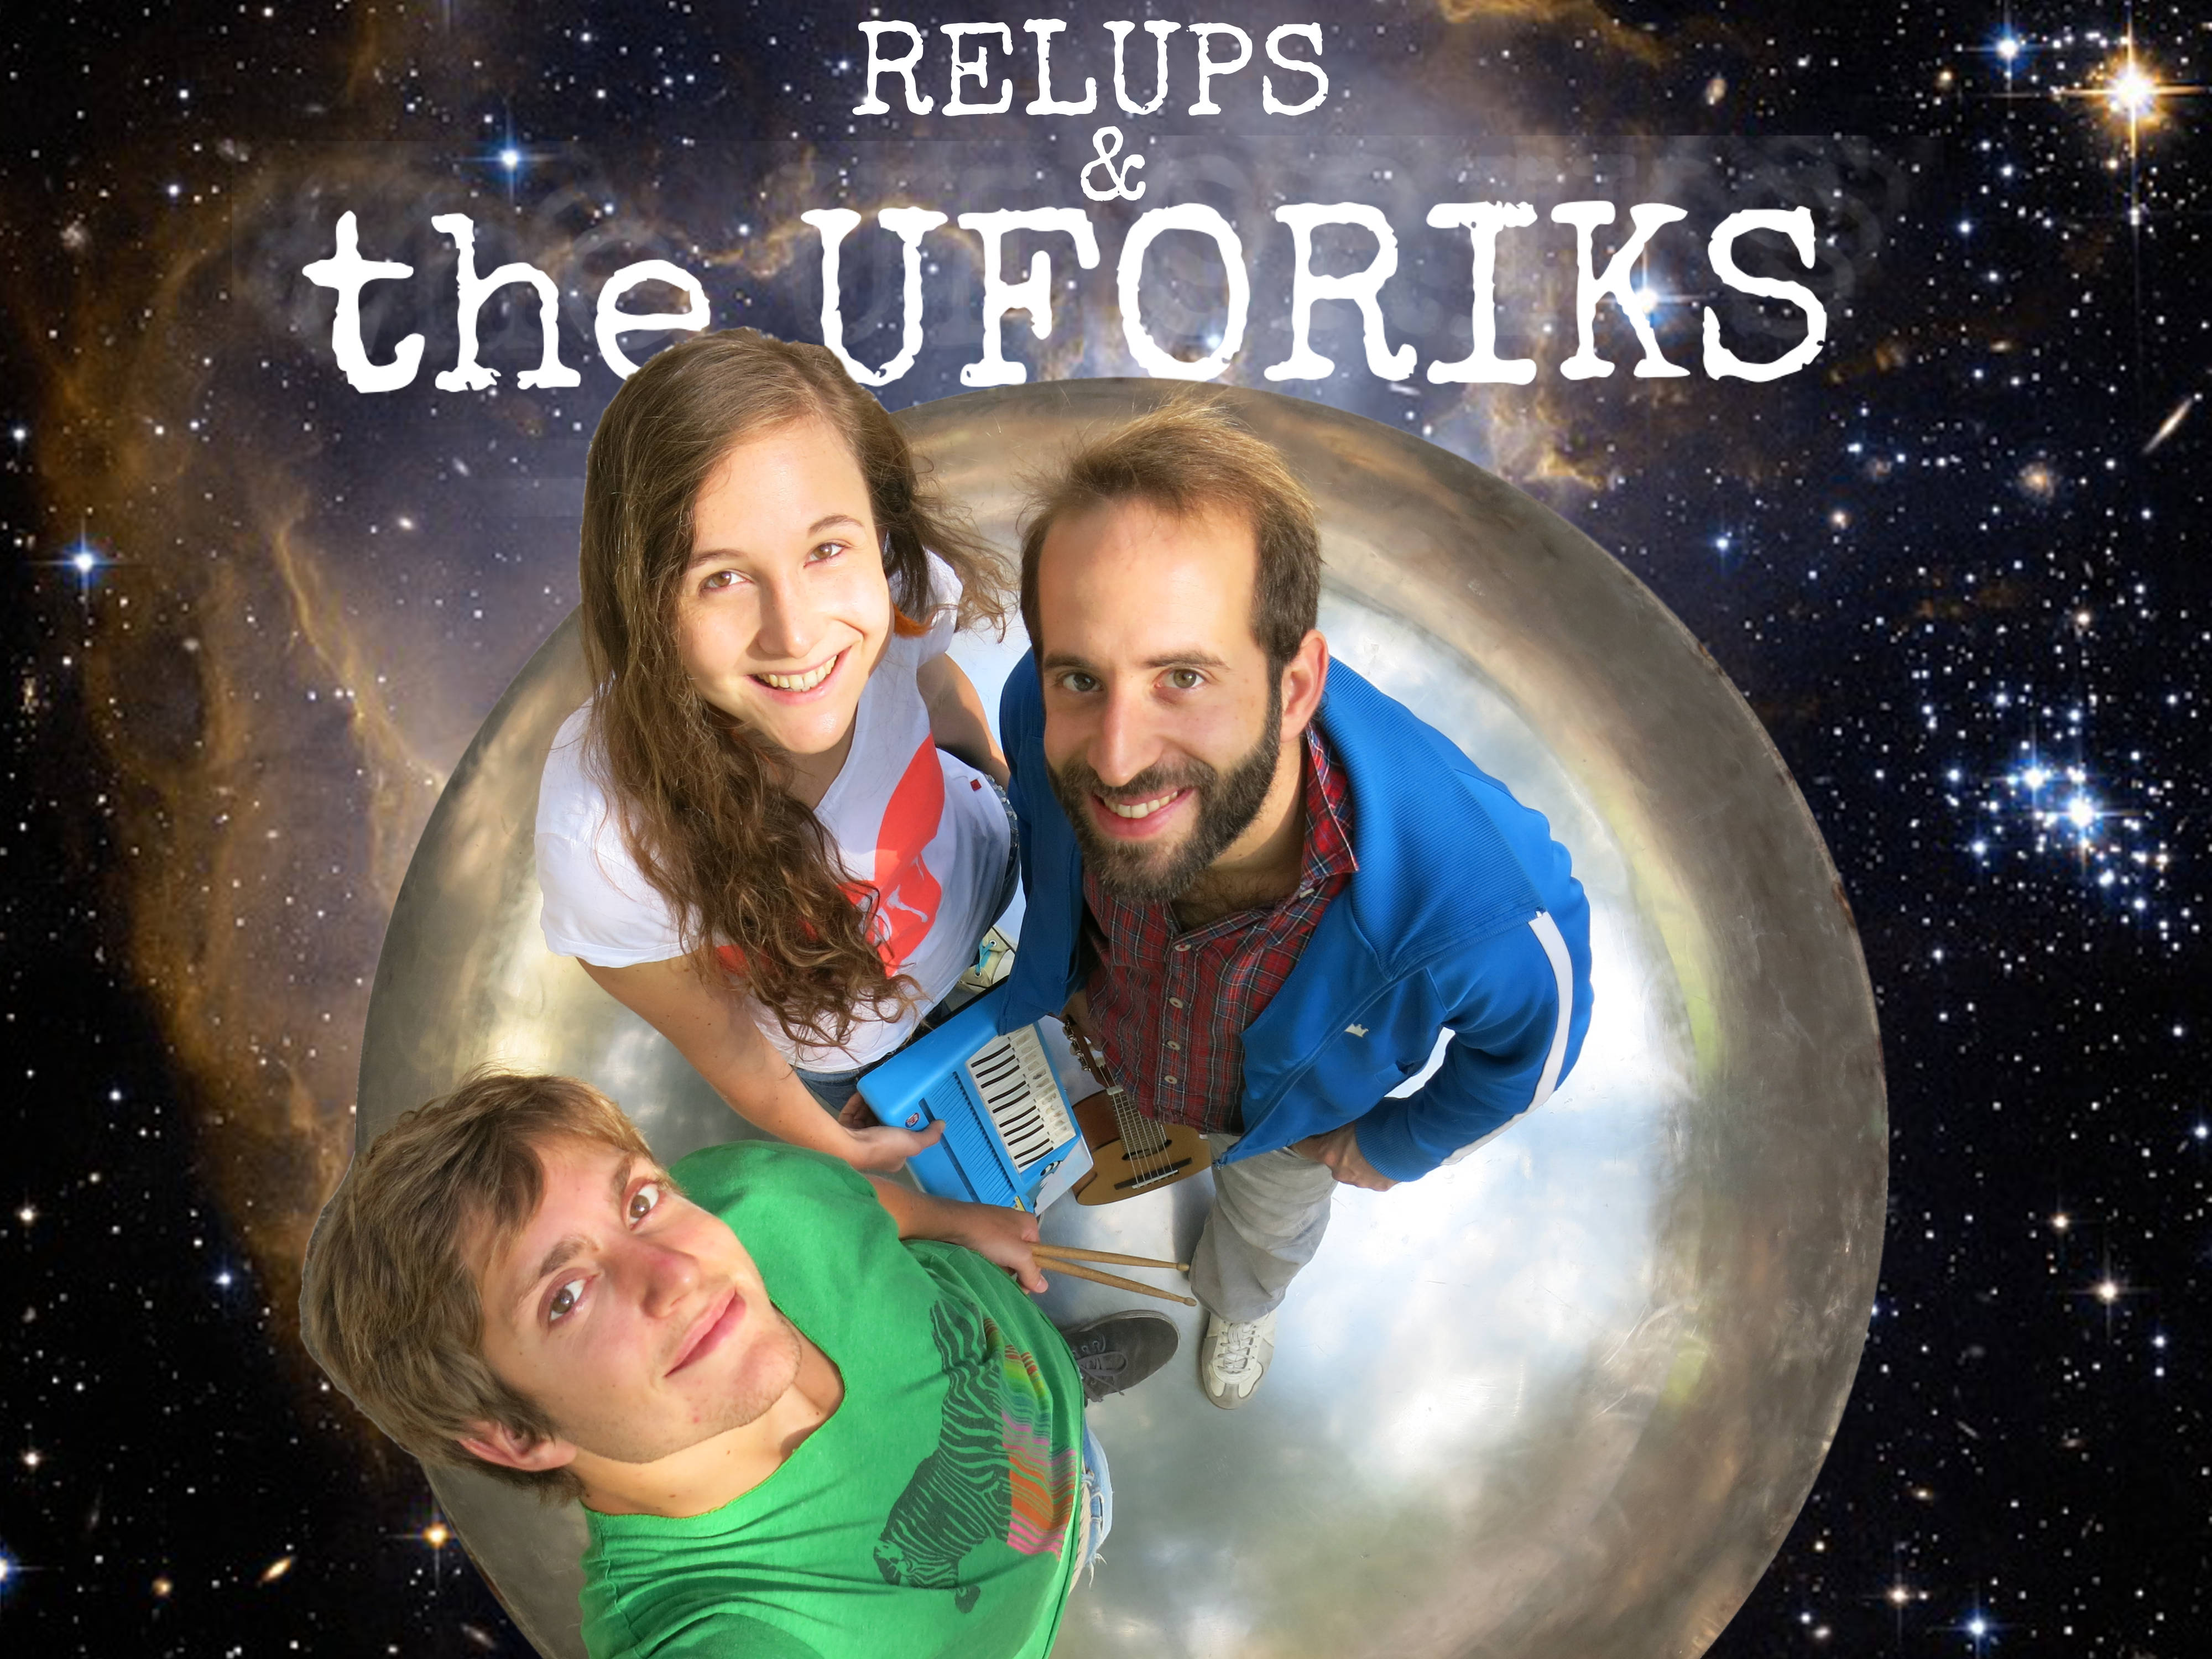 Relups, the Uforiks, Uforiks